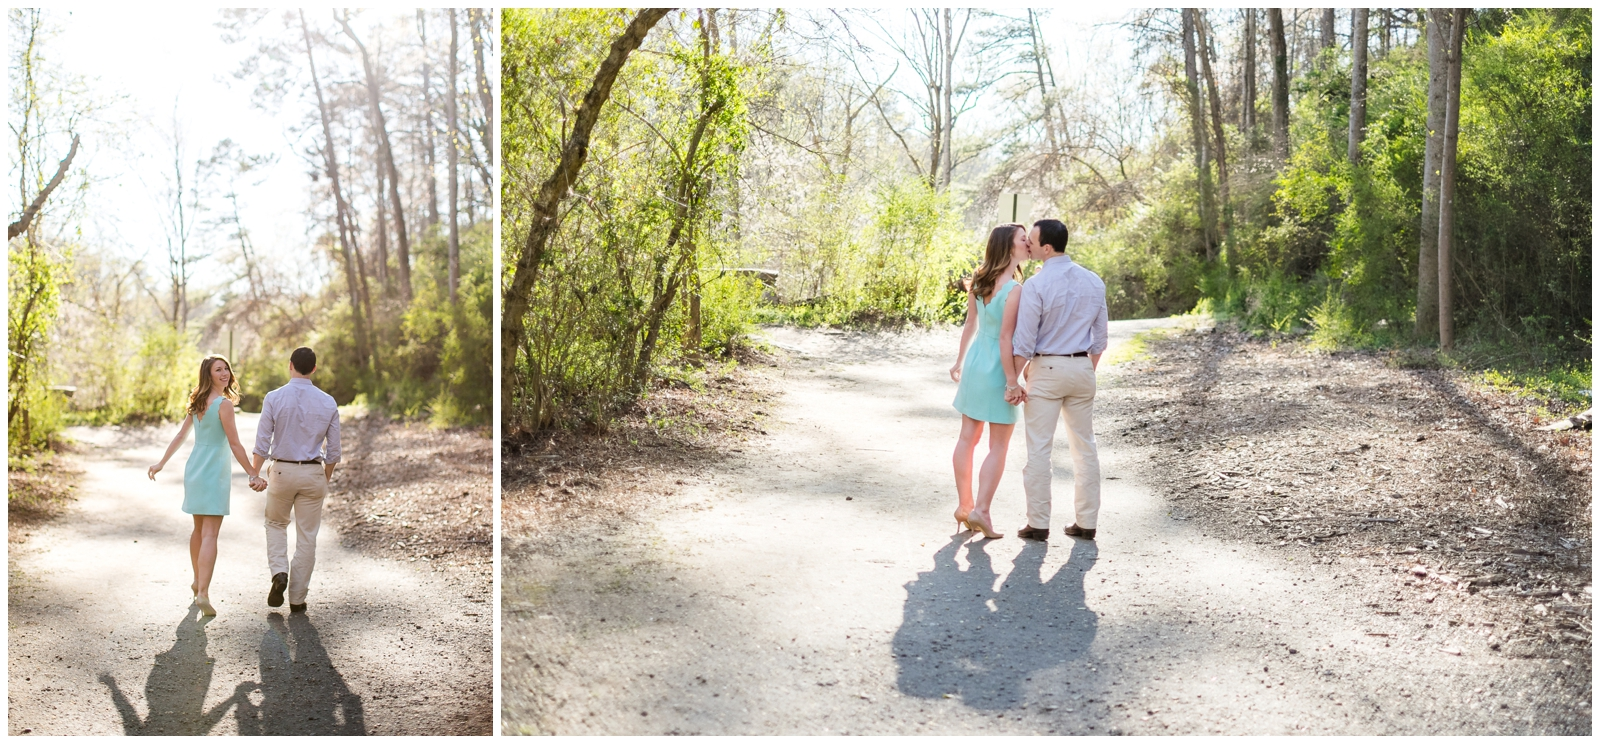 ArdentStoryHannahDavidEngaged_AtlantaEngagement_0008